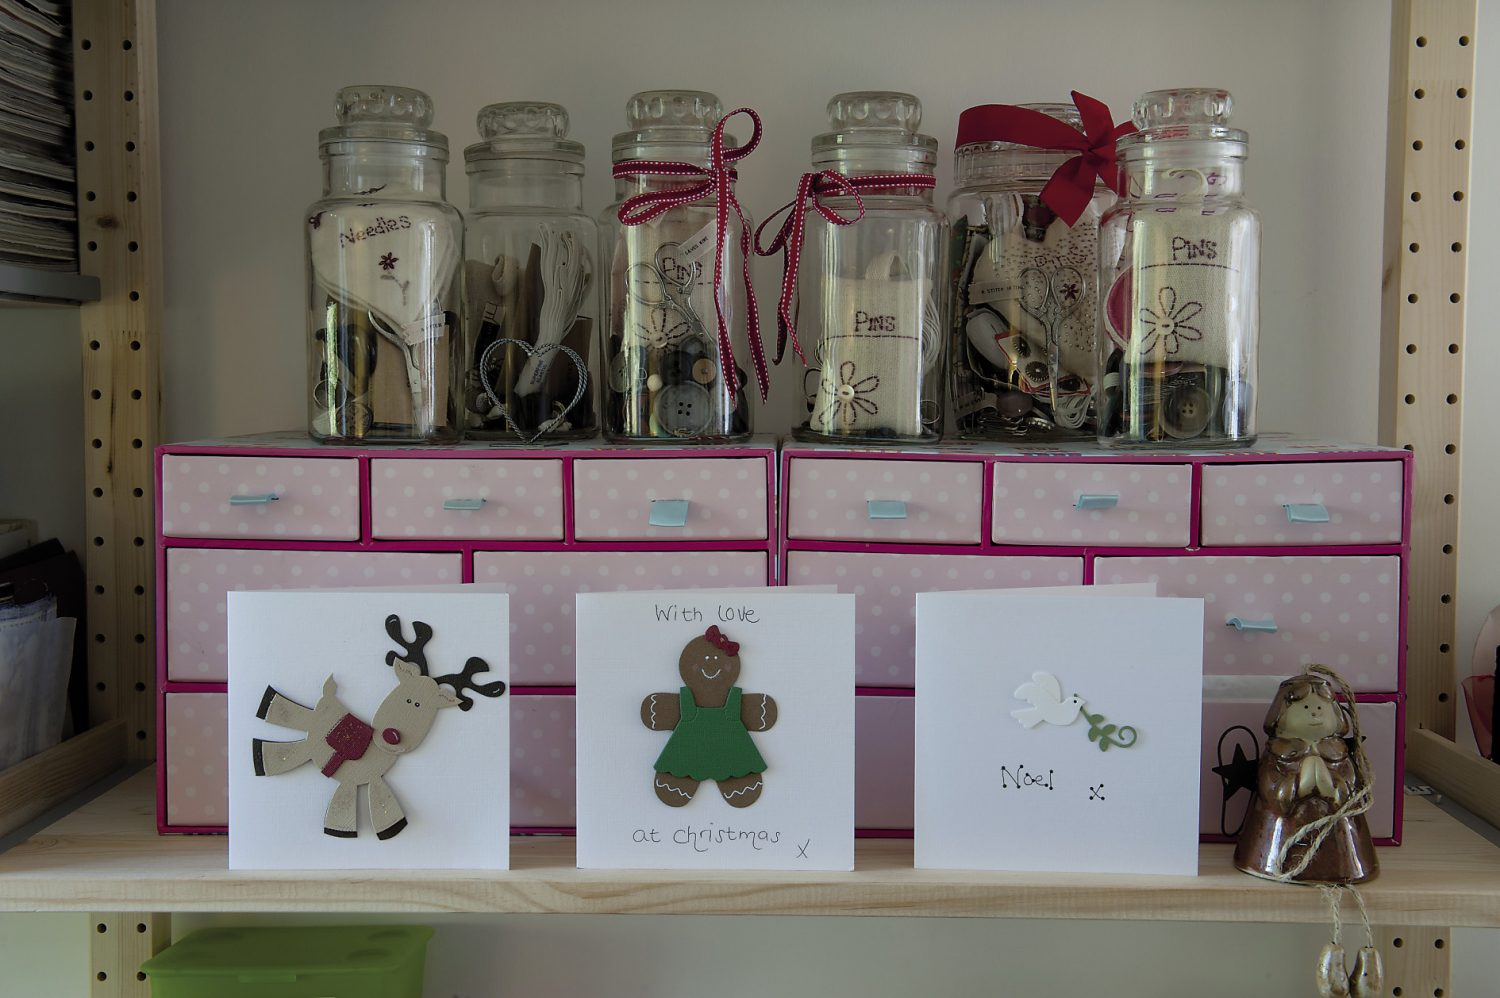 Kitty's workroom is home to birthday and Christmas cards adorned with paper cut-outs and vintage mother-of-pearl buttons as well as neatly arranged envelopes, ribbons, crisp tissue paper and shiny Cellophane